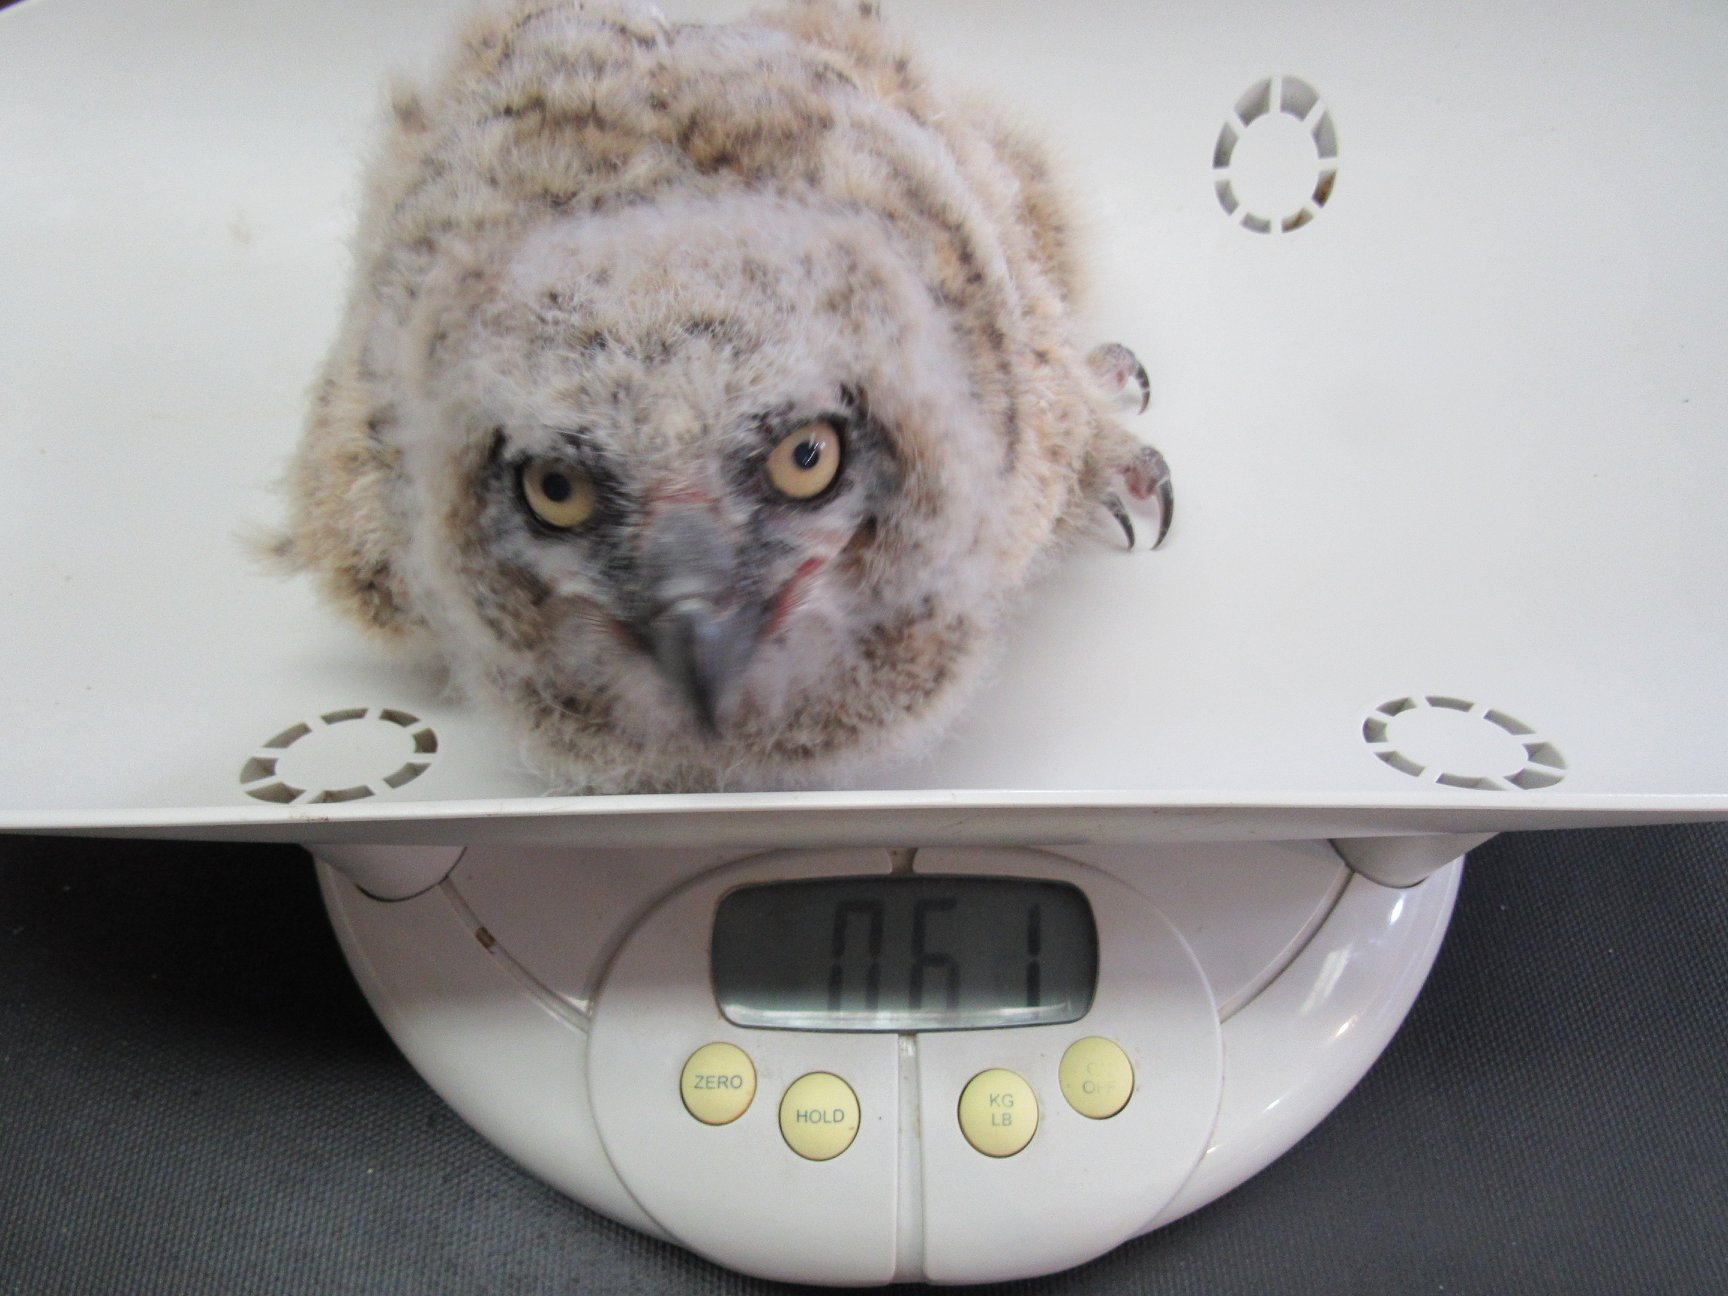 Hard to imagine our owls as they are now were once this tiny.